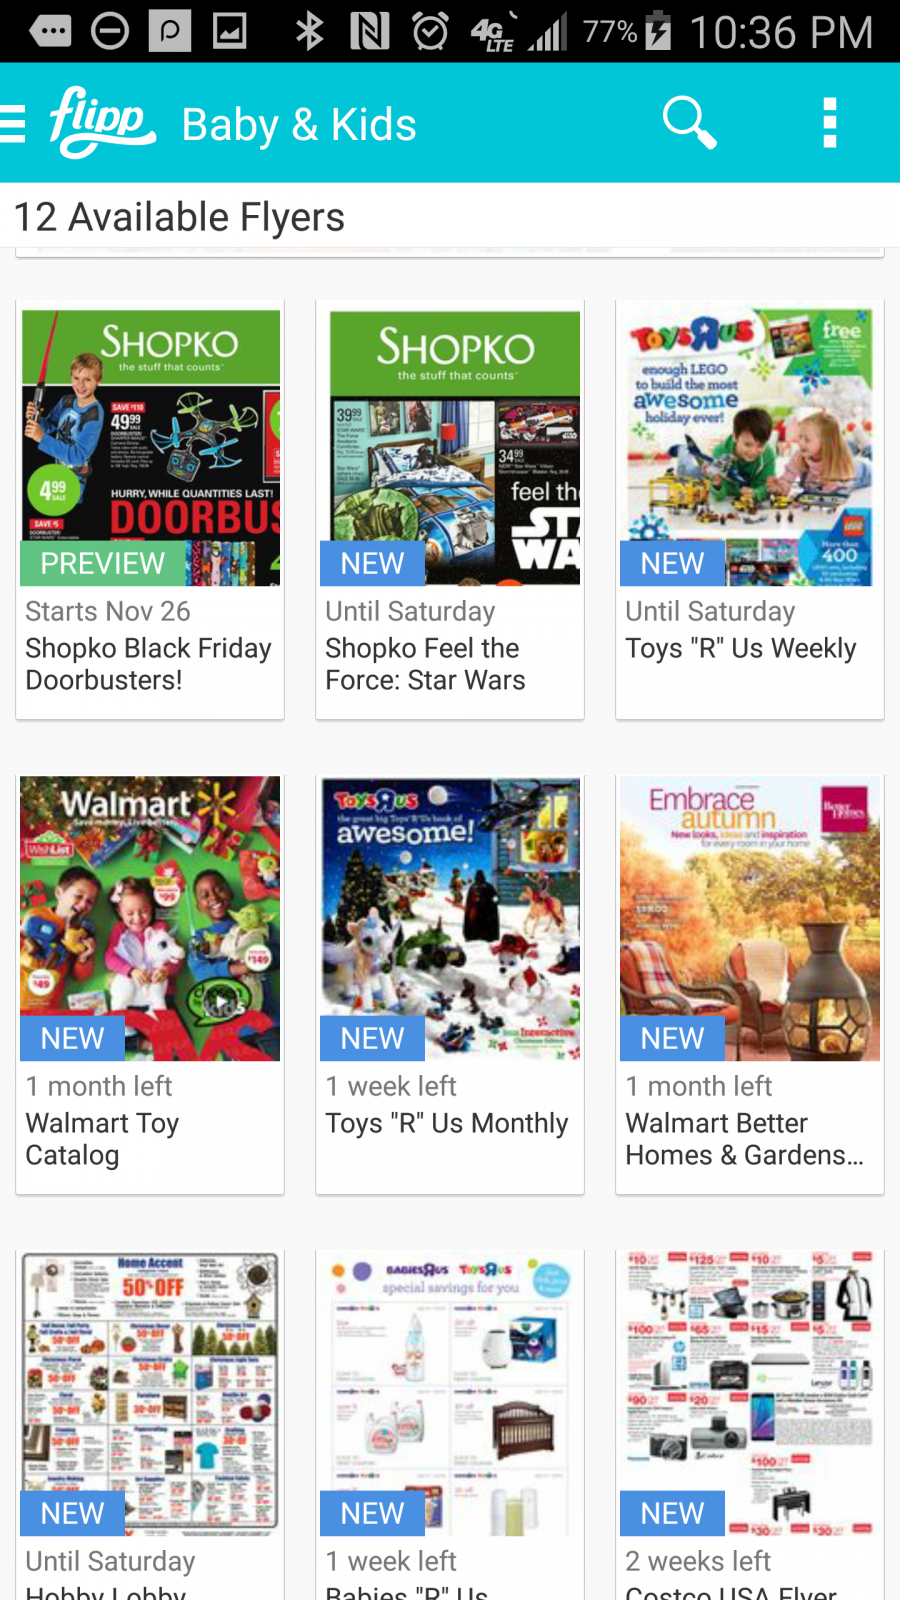 Flipp App - Flyers - Flipp App - circulars online with coupons and matchups for major retailers across the US. ad